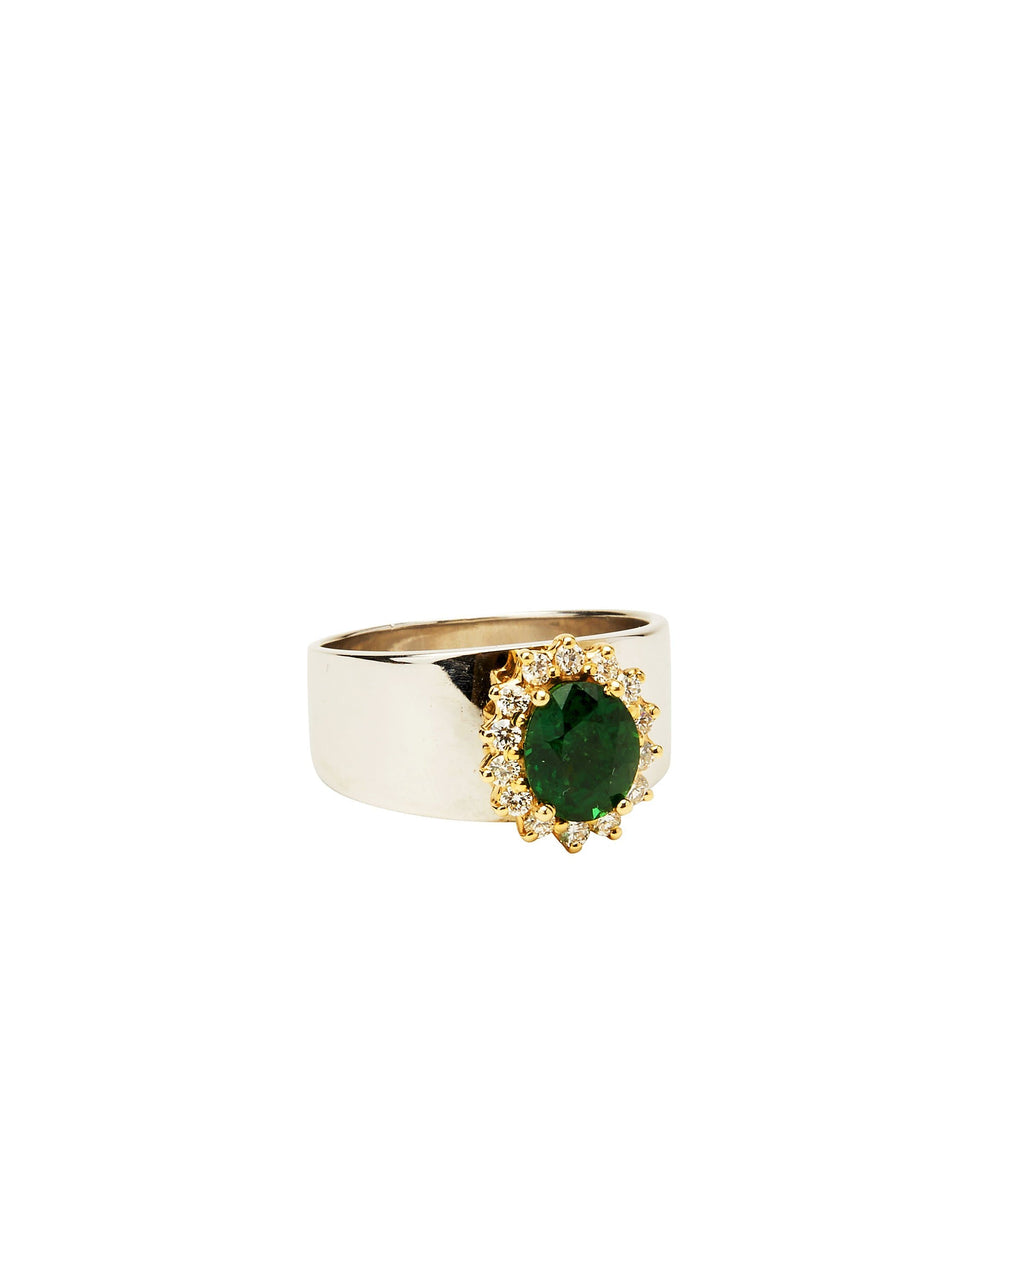 Tsavorite Garnet and Diamond on 14k White Gold